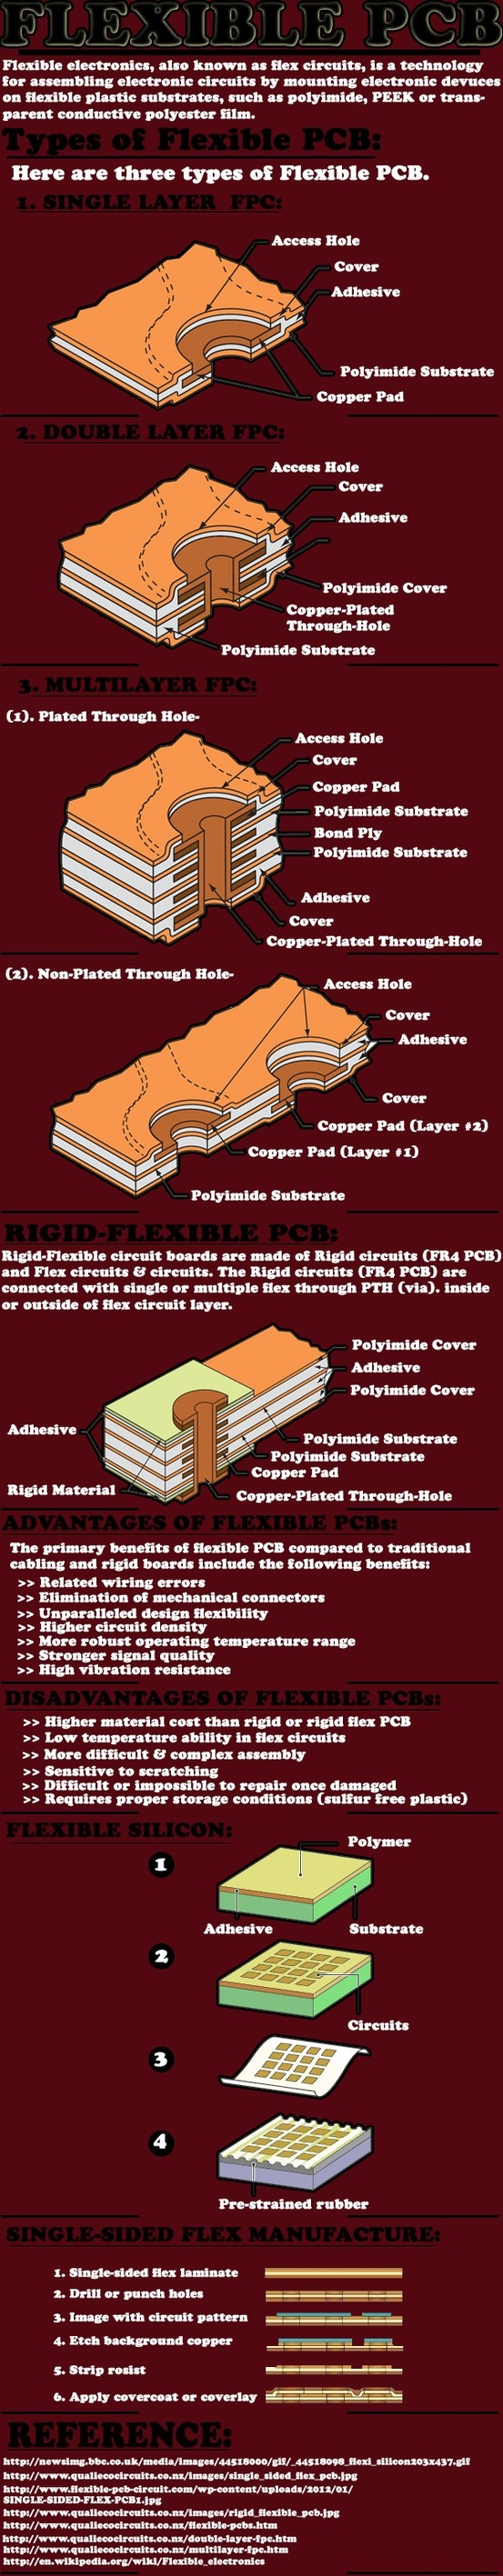 The infograph explains about the variety of Flexible PCB available. It also enumerates the respective advantages and disadvantages of Flex #PCB. CCS International Circuits brings Flex PCB circuits that have numerous applications. Before the actual assembly of the components Flex circuits can be tested for quality assurance. The parts can be adjusted or eliminated to reduce the costs overall.